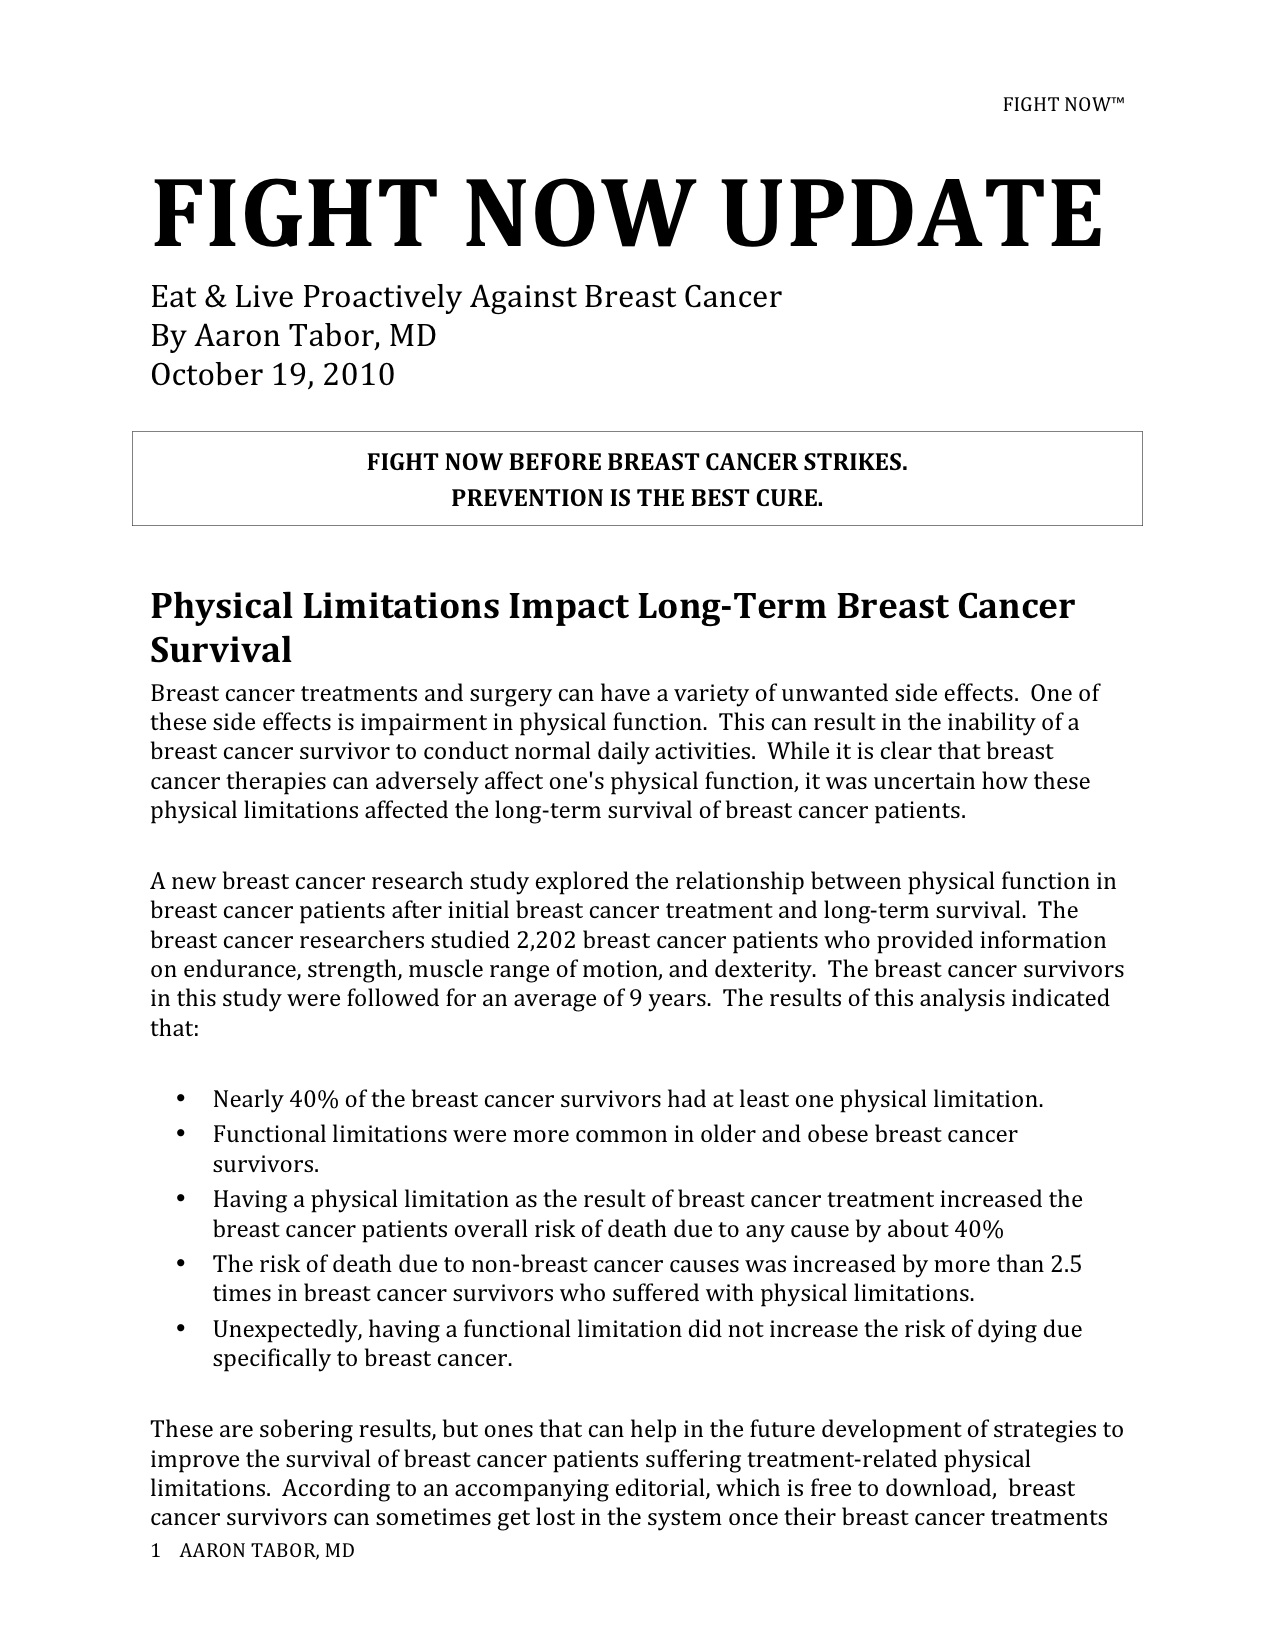 Fight Now Breast Cancer Newsletter - Oct 19th 2010